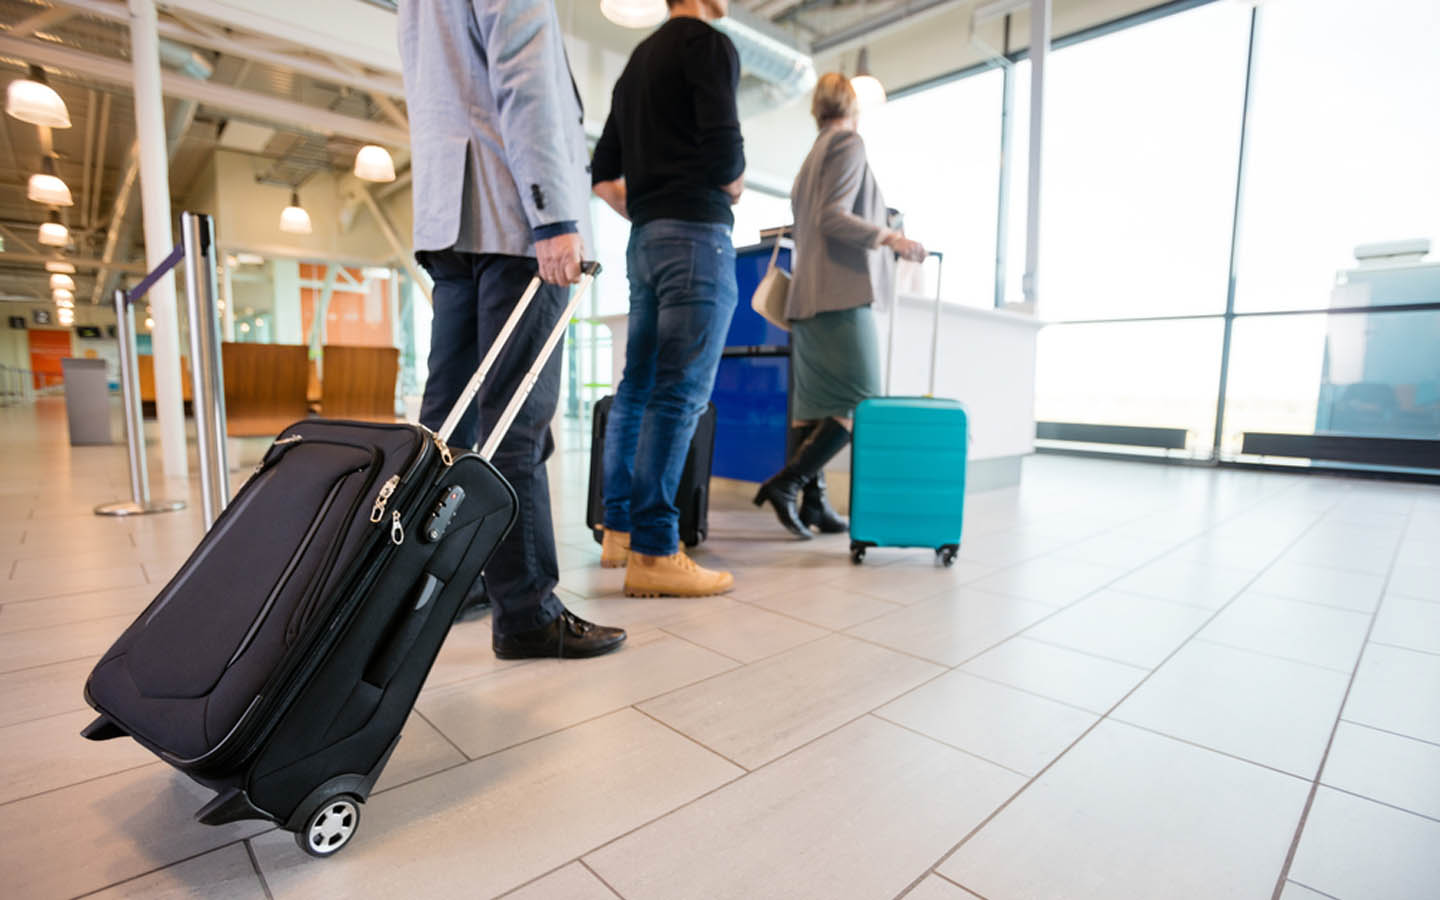 travelers with luggage